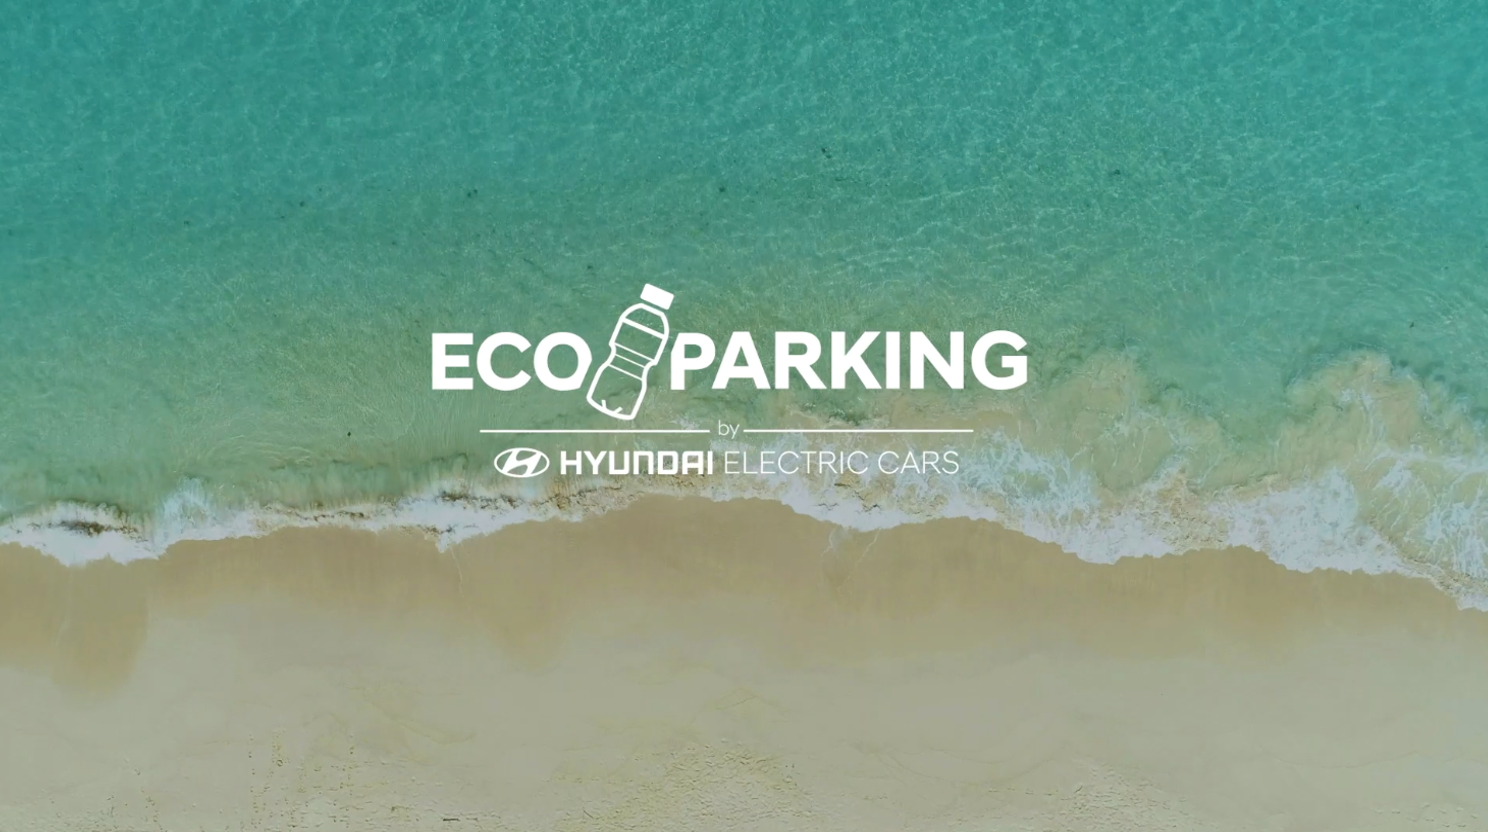 El Eco Parking de Hyundai llega a la playa de Valdelagrana